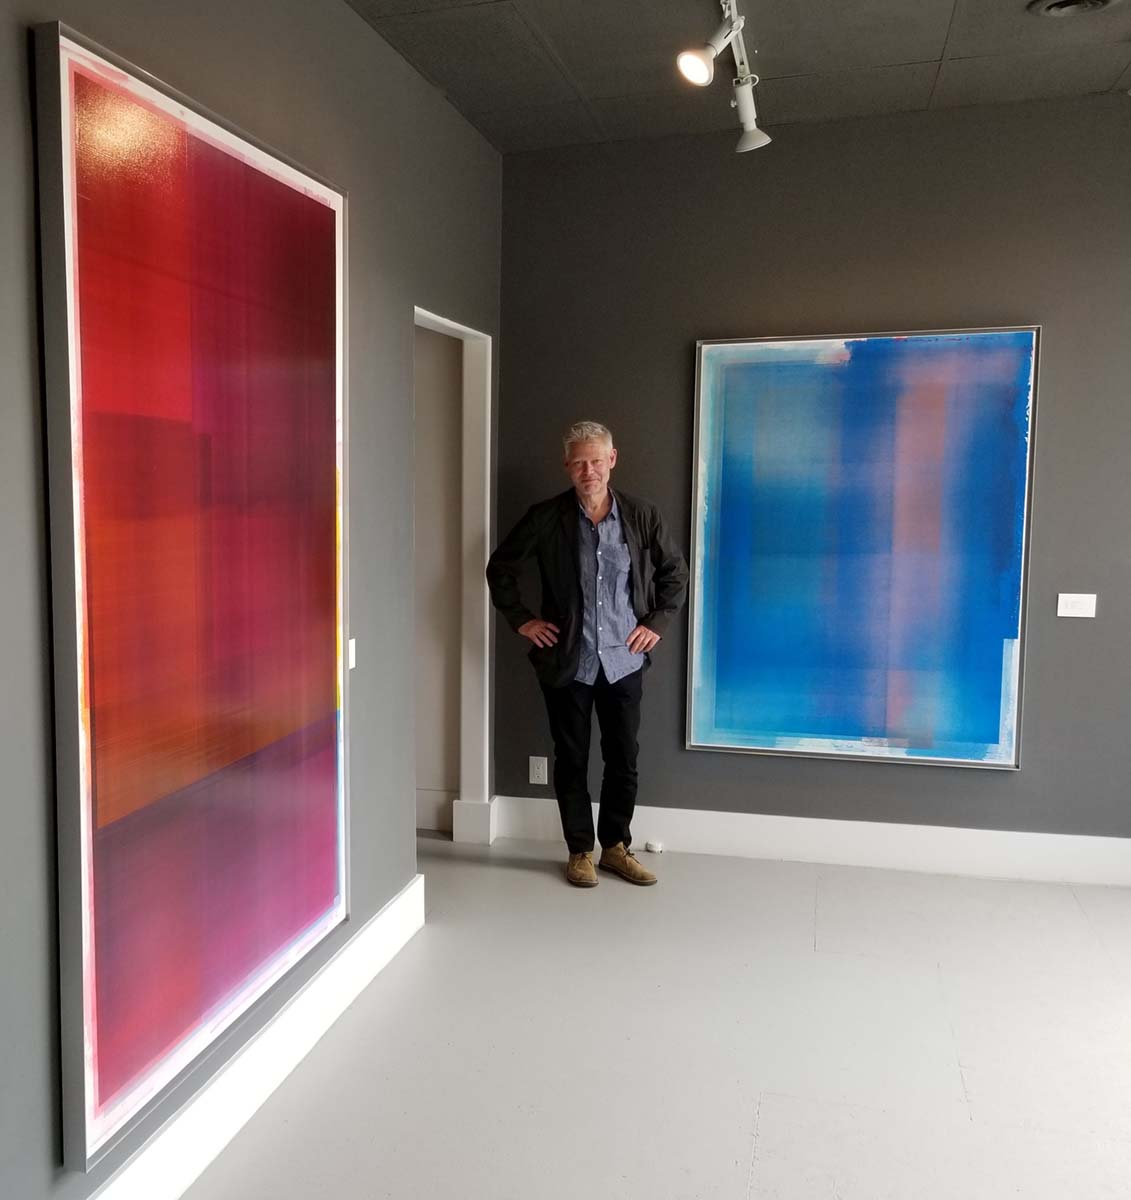 Jonathan Forrest with his artwork